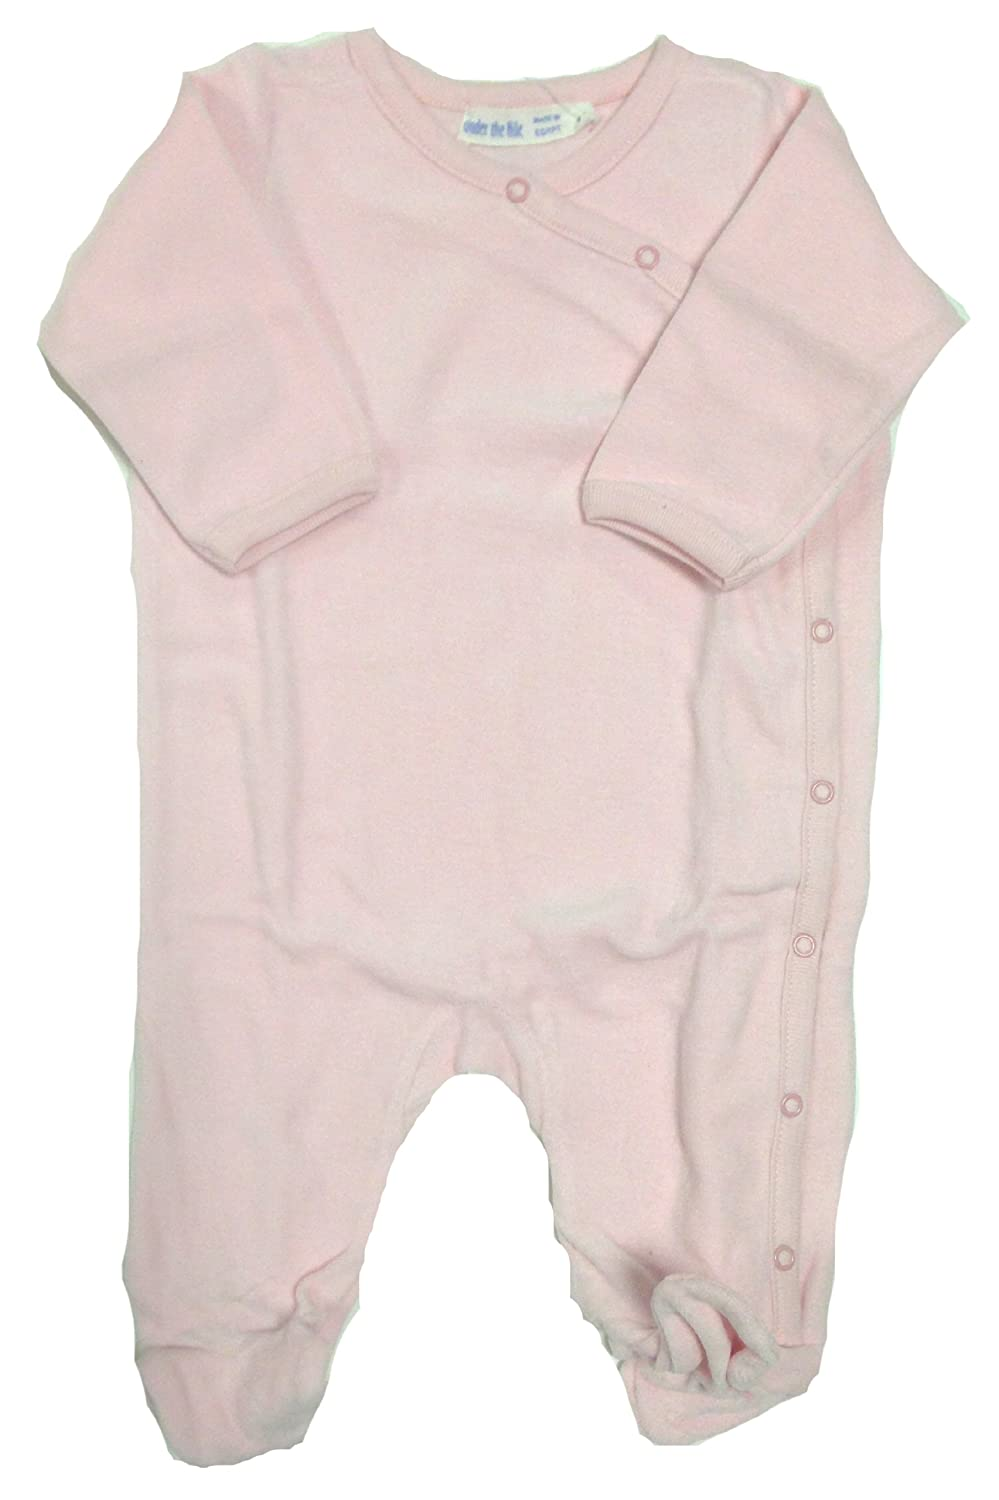 Under the Nile Organic Cotton Velour Footie Solid Pink or Stripe 3-6M